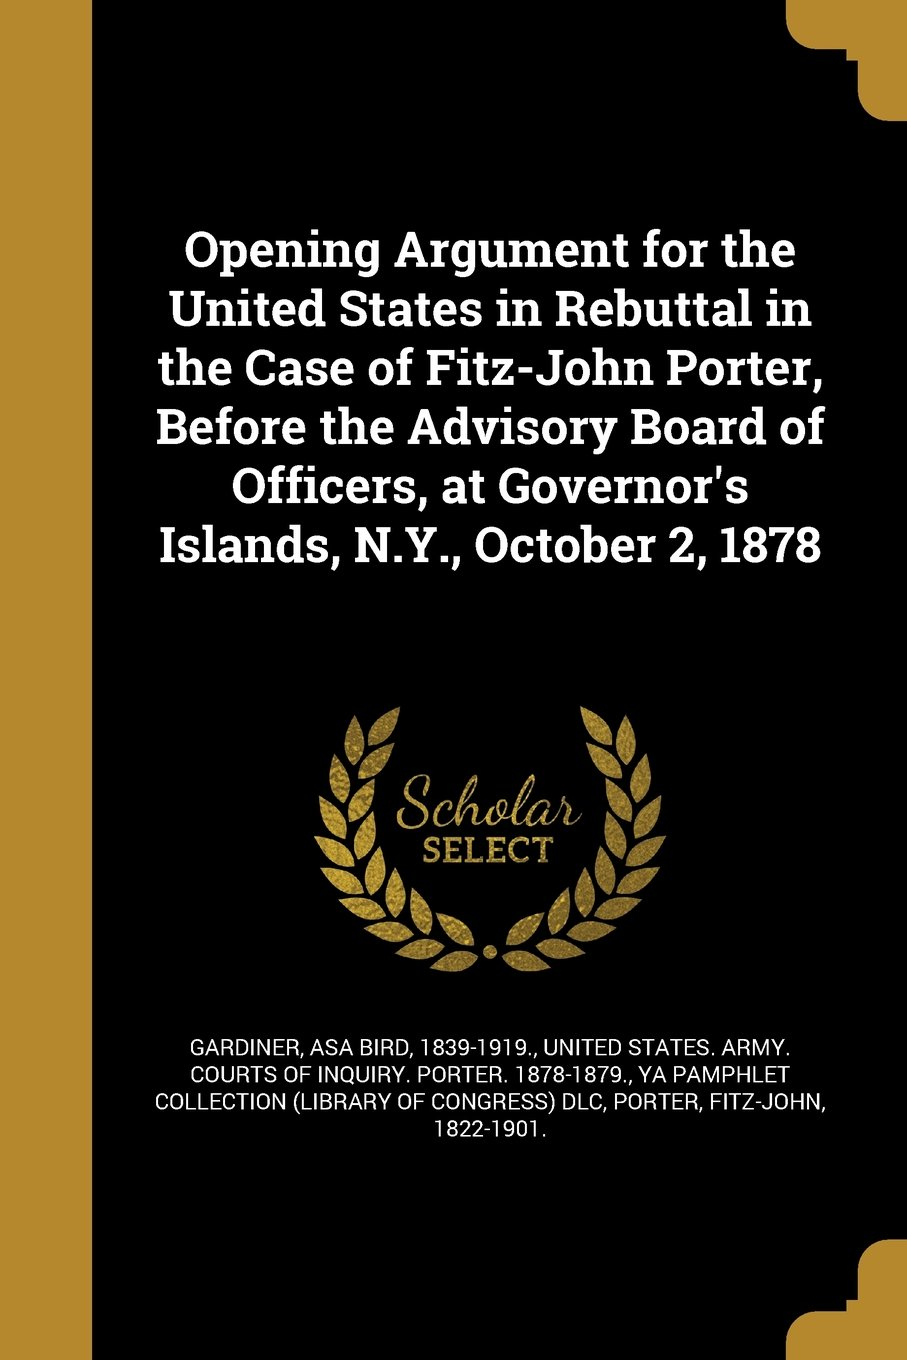 Opening Argument for the United States in Rebuttal in the Case of Fitz-John Porter, Before the Advisory Board of Officers, at Governor's Islands, N.Y., October 2, 1878 pdf